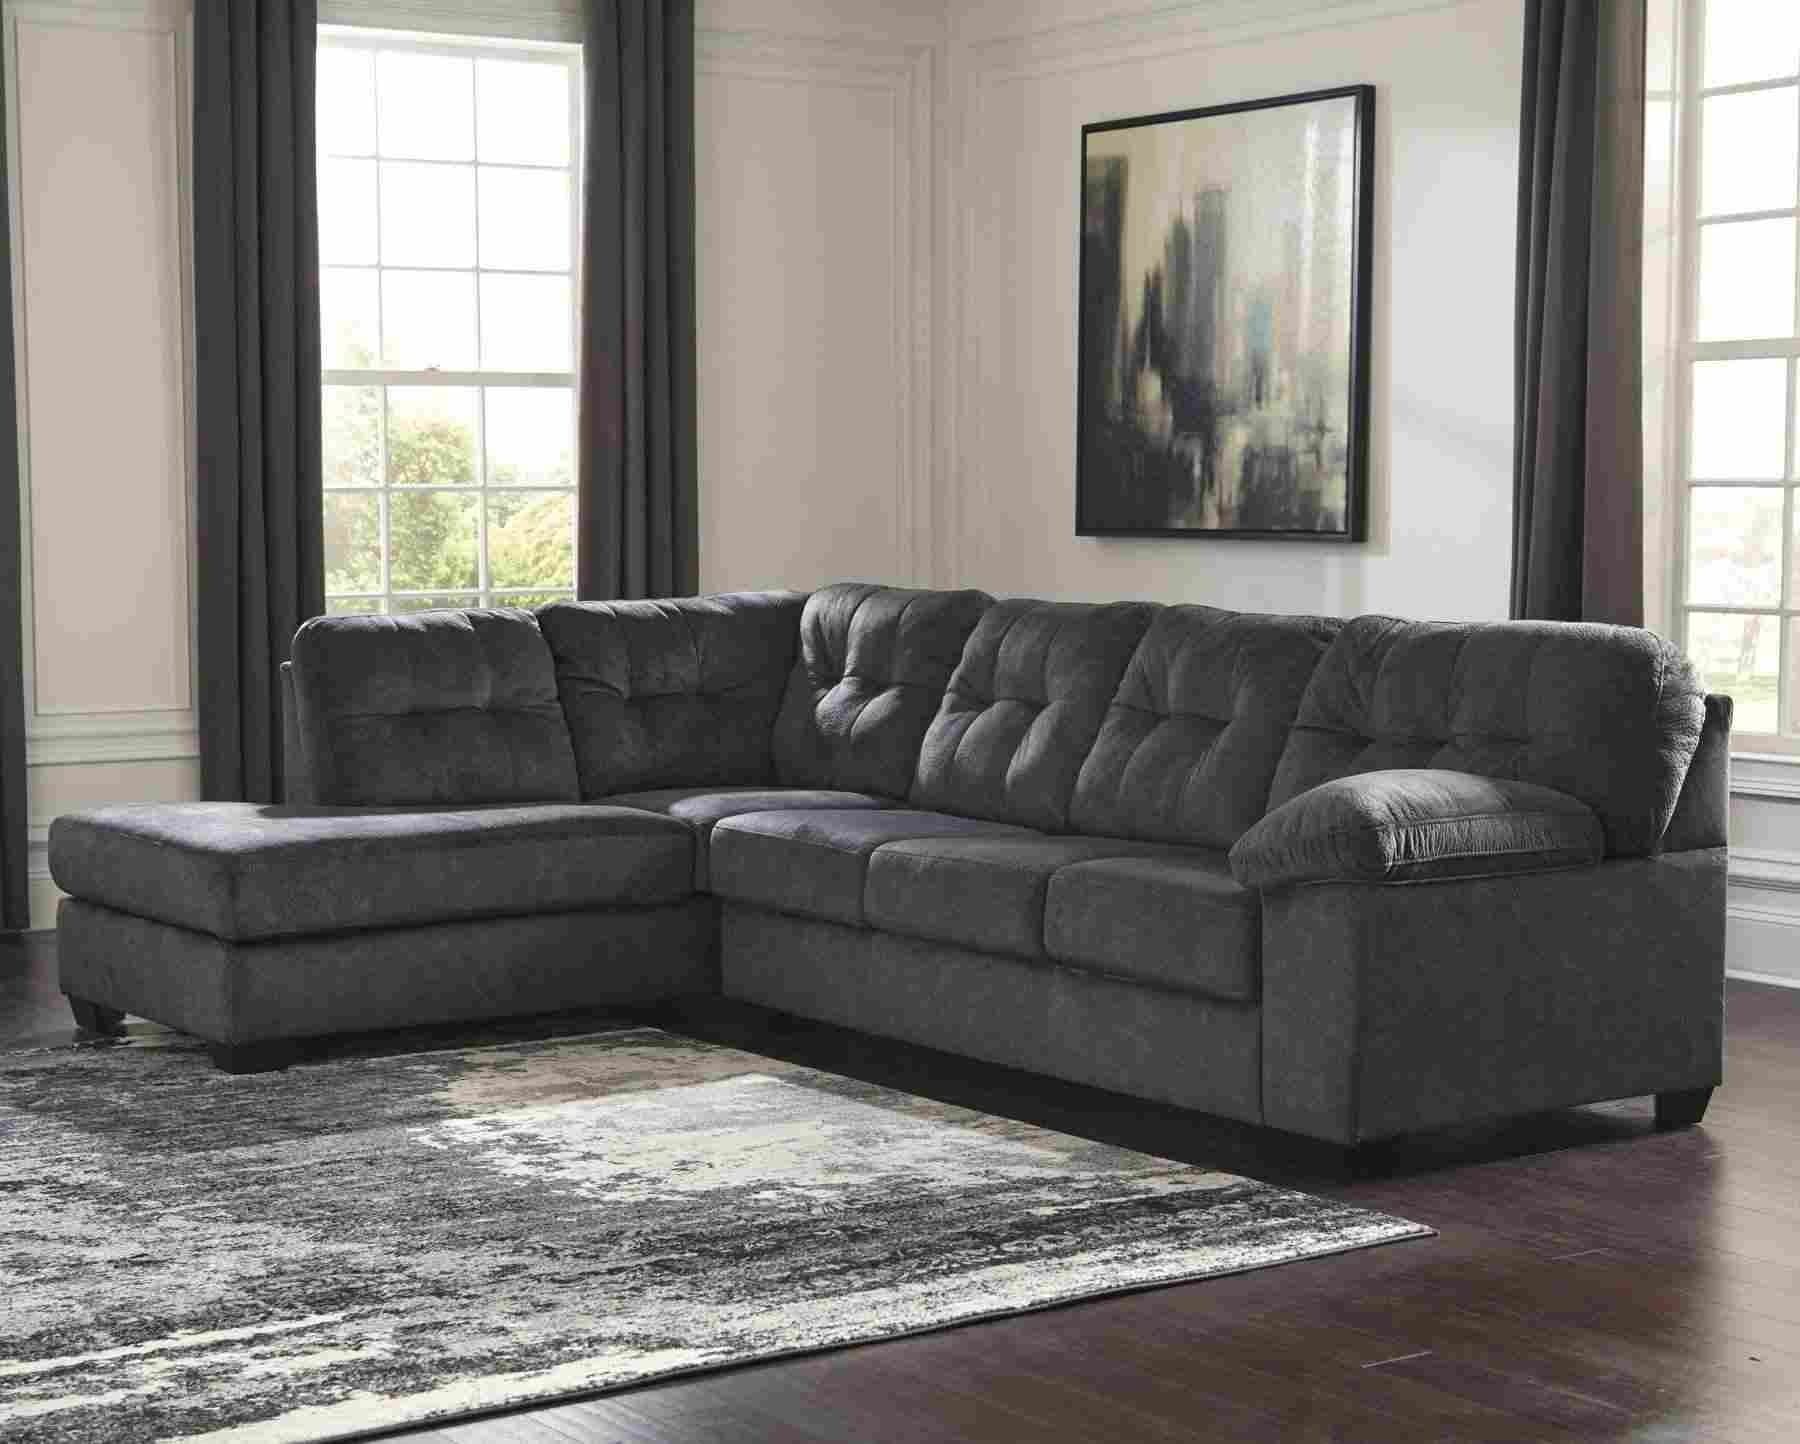 Cheap Living Room Furniture 2 Best Of For Modern Living Room Sets pertaining to Aquarius Dark Grey 2 Piece Sectionals With Raf Chaise (Image 10 of 30)